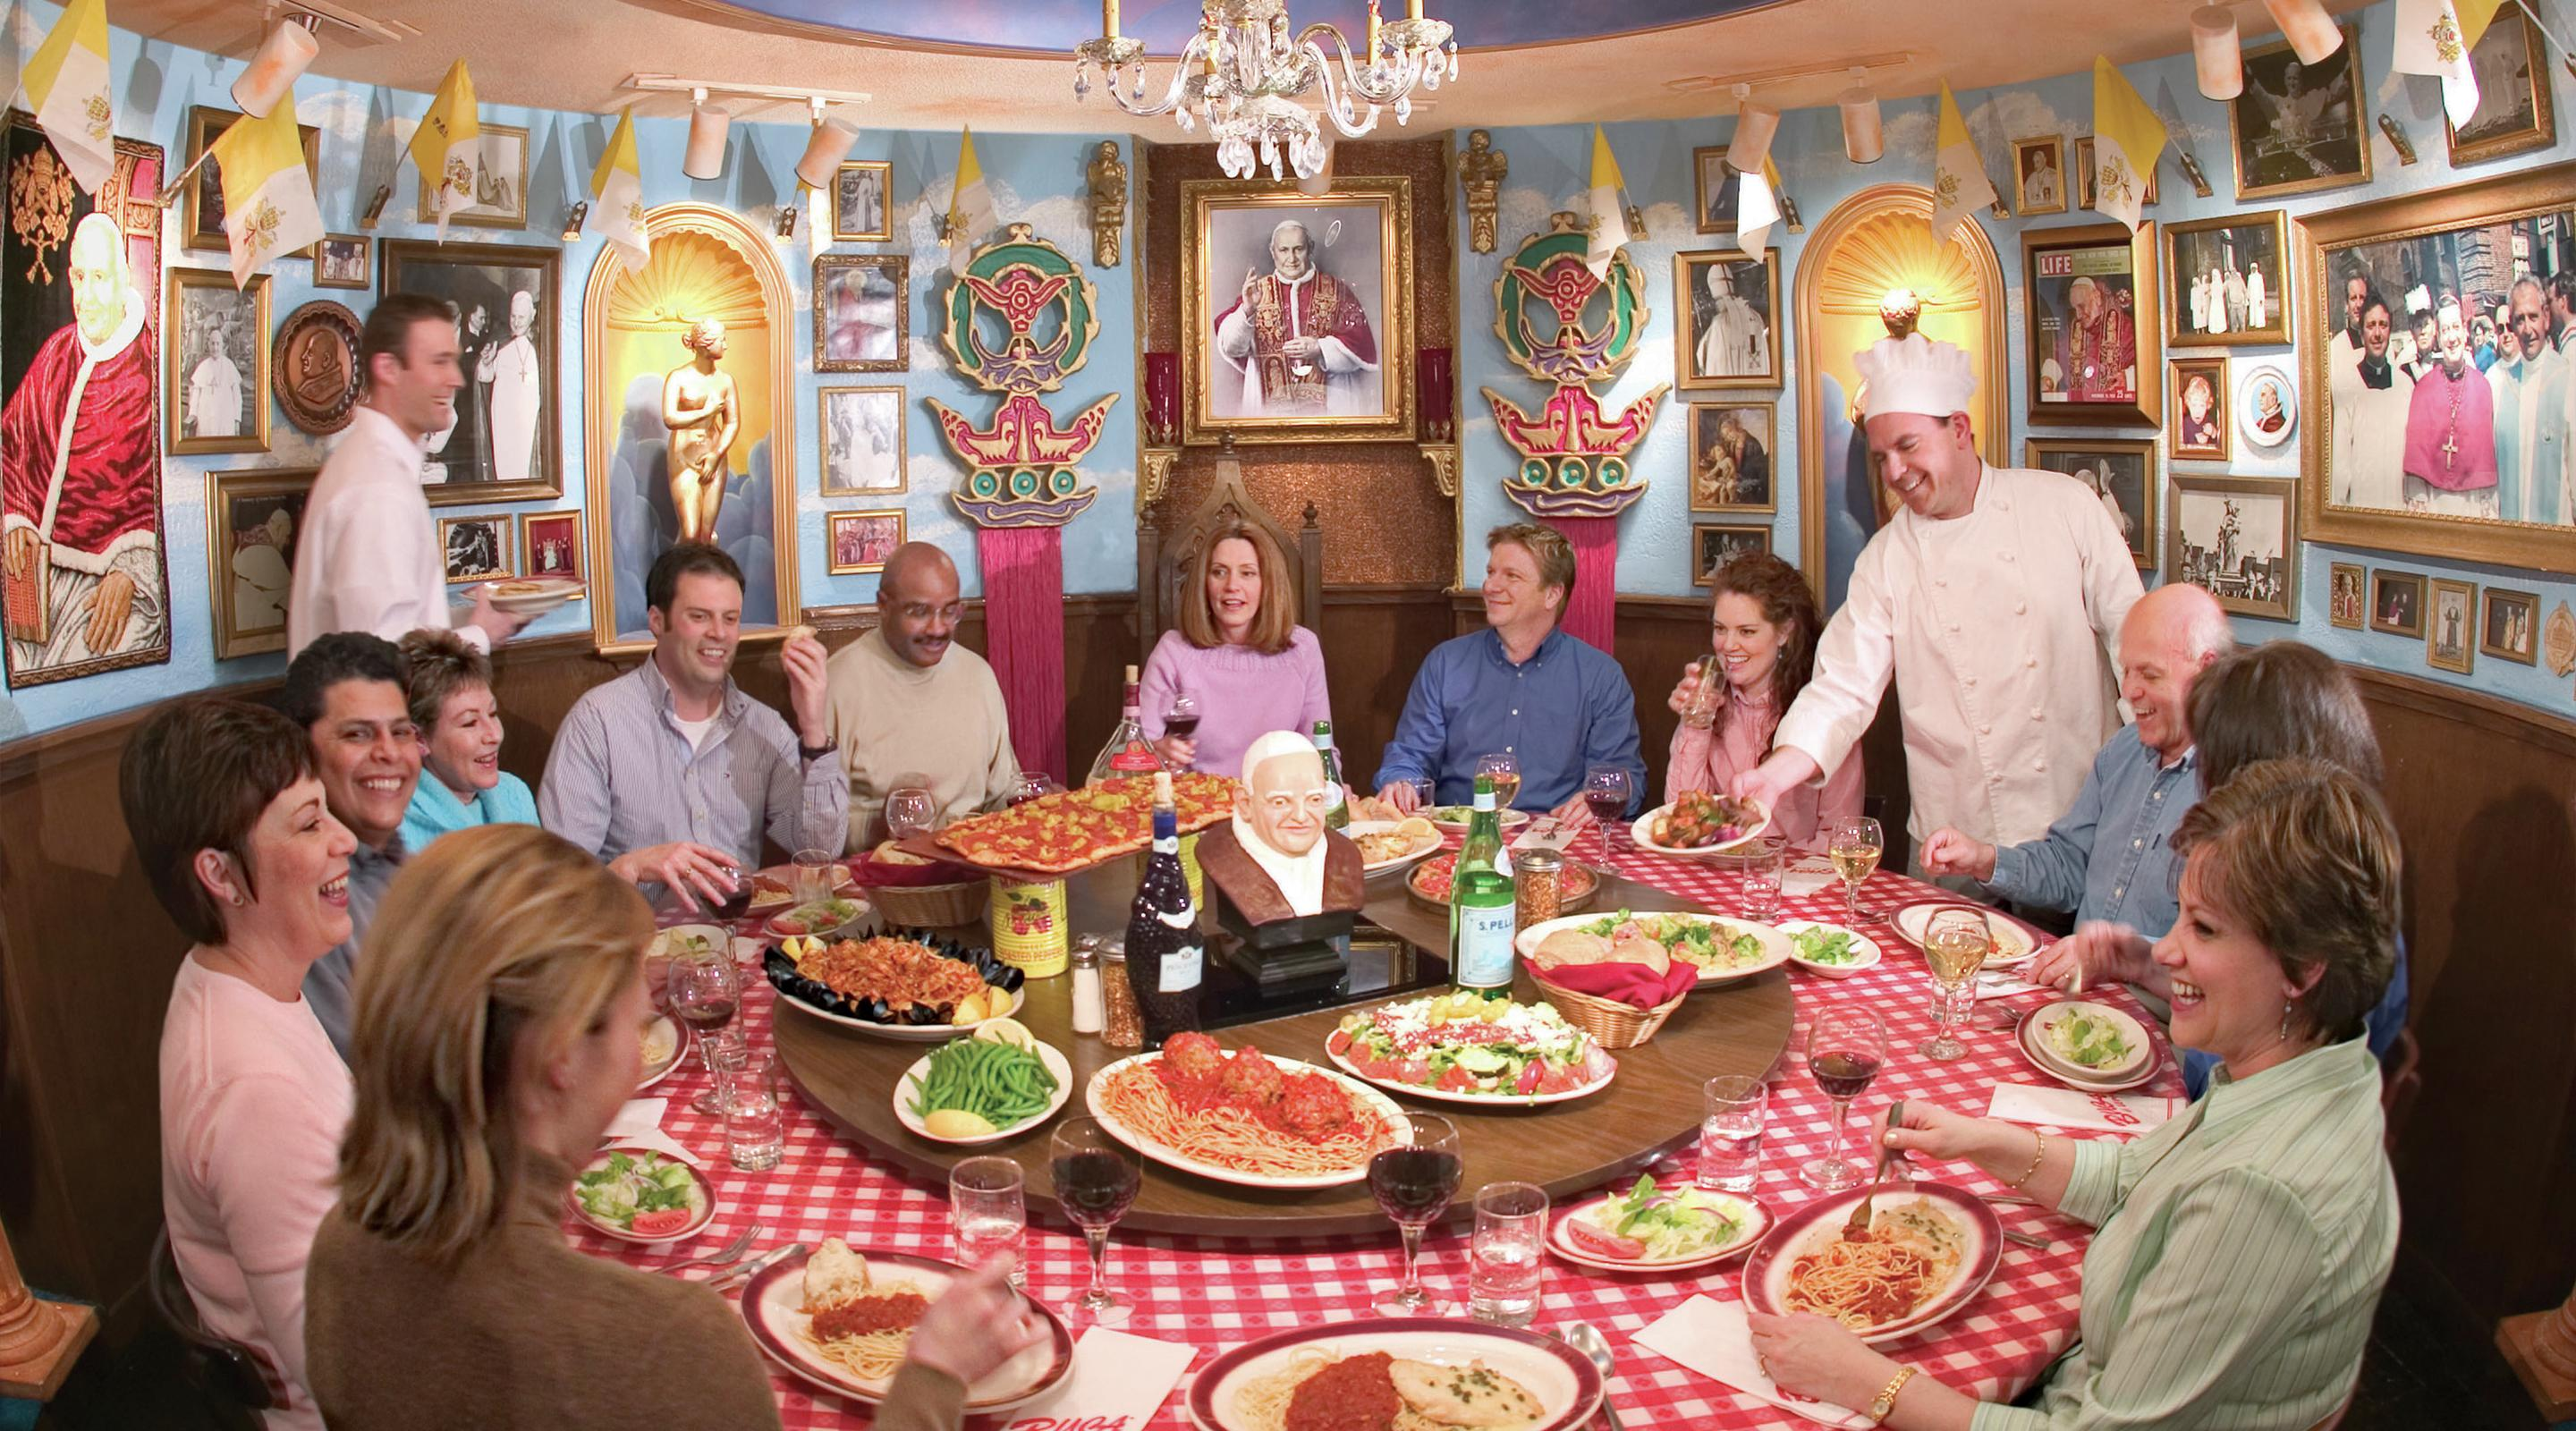 This is an image of a group eating at the Pope Room in Buca di Beppo.